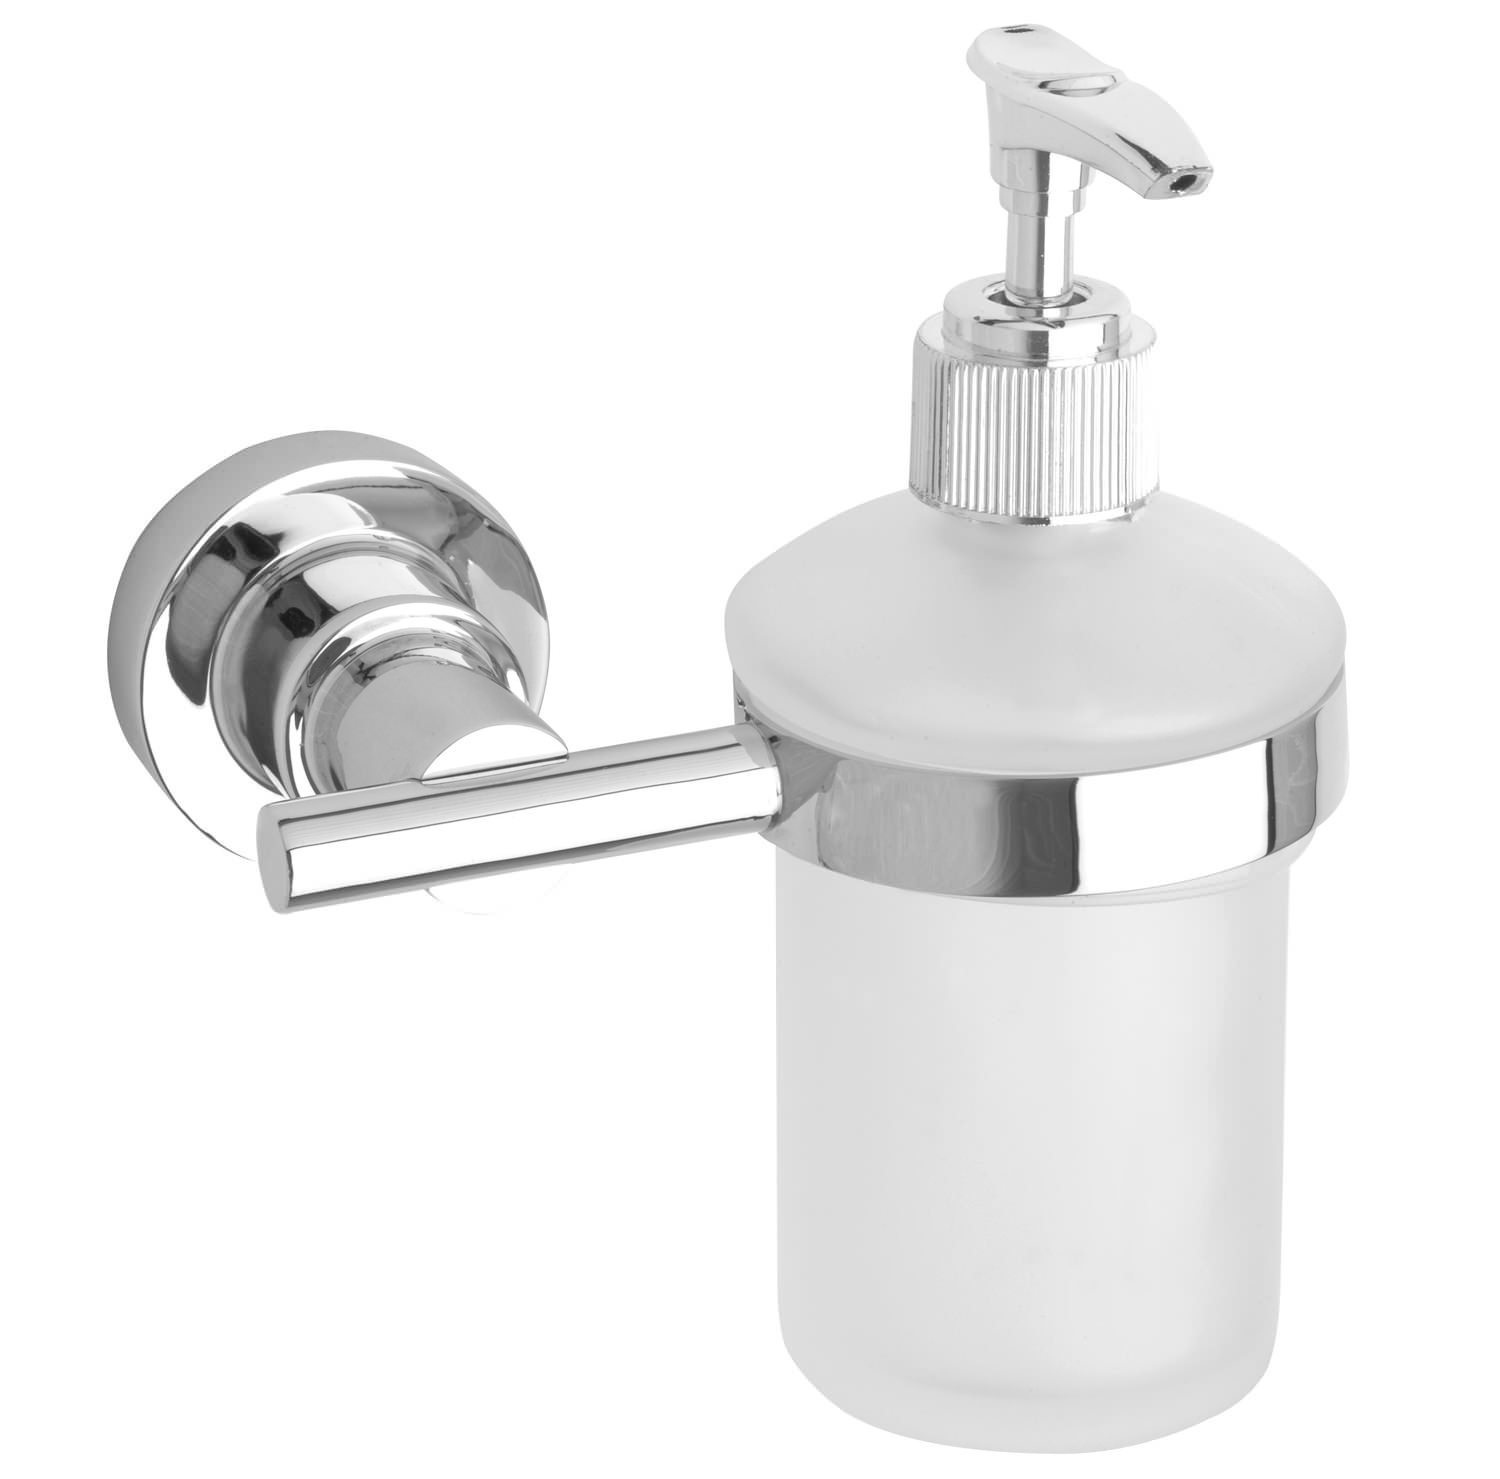 Never drill again bathroom accessories - Red Dot Luup Soap Dispenser Lu412